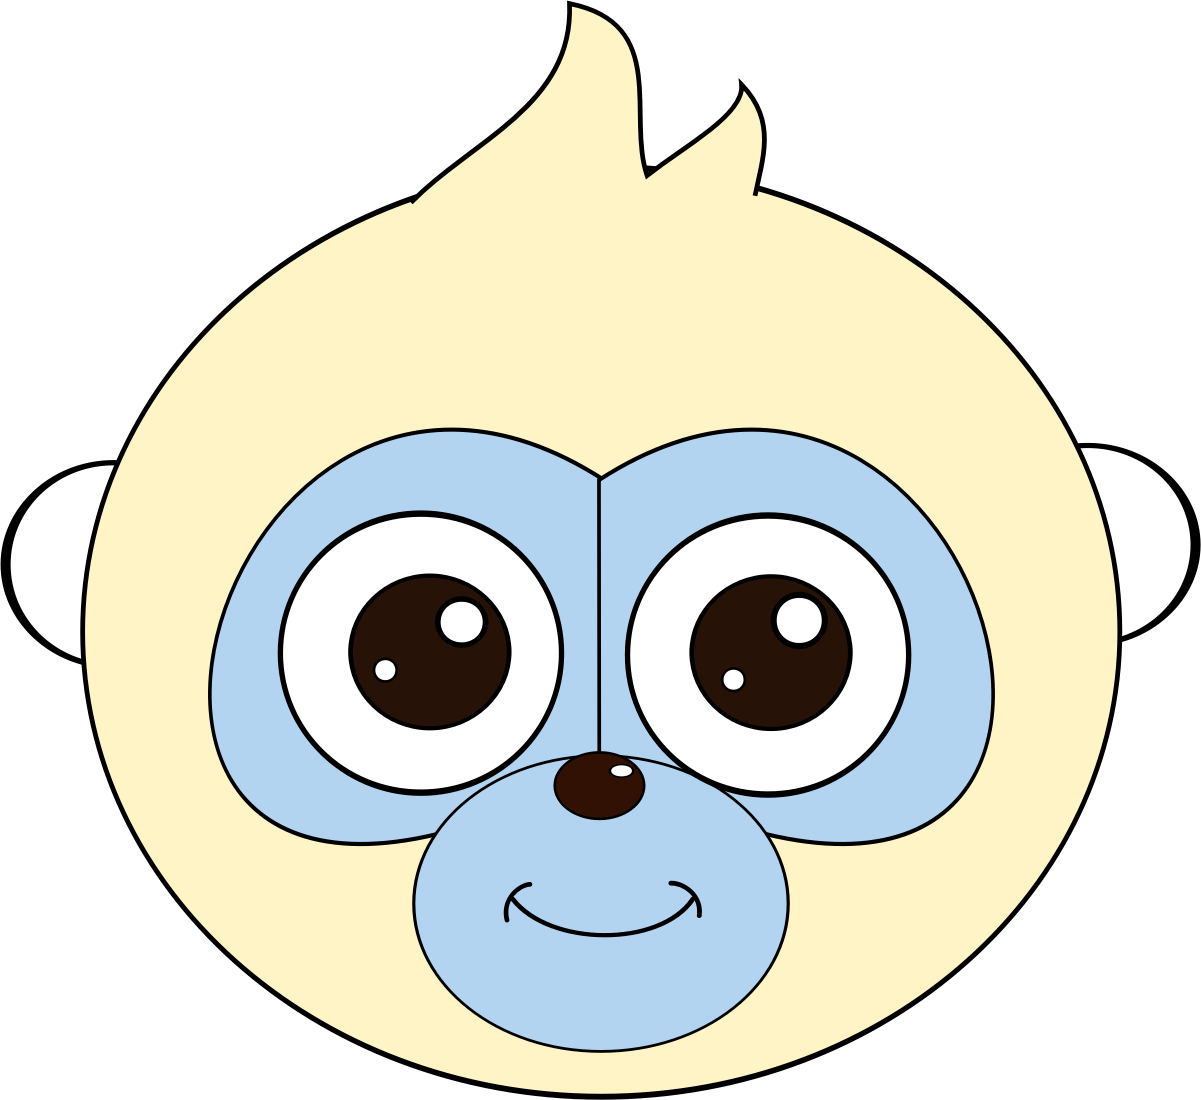 Monkey  by david_gomez